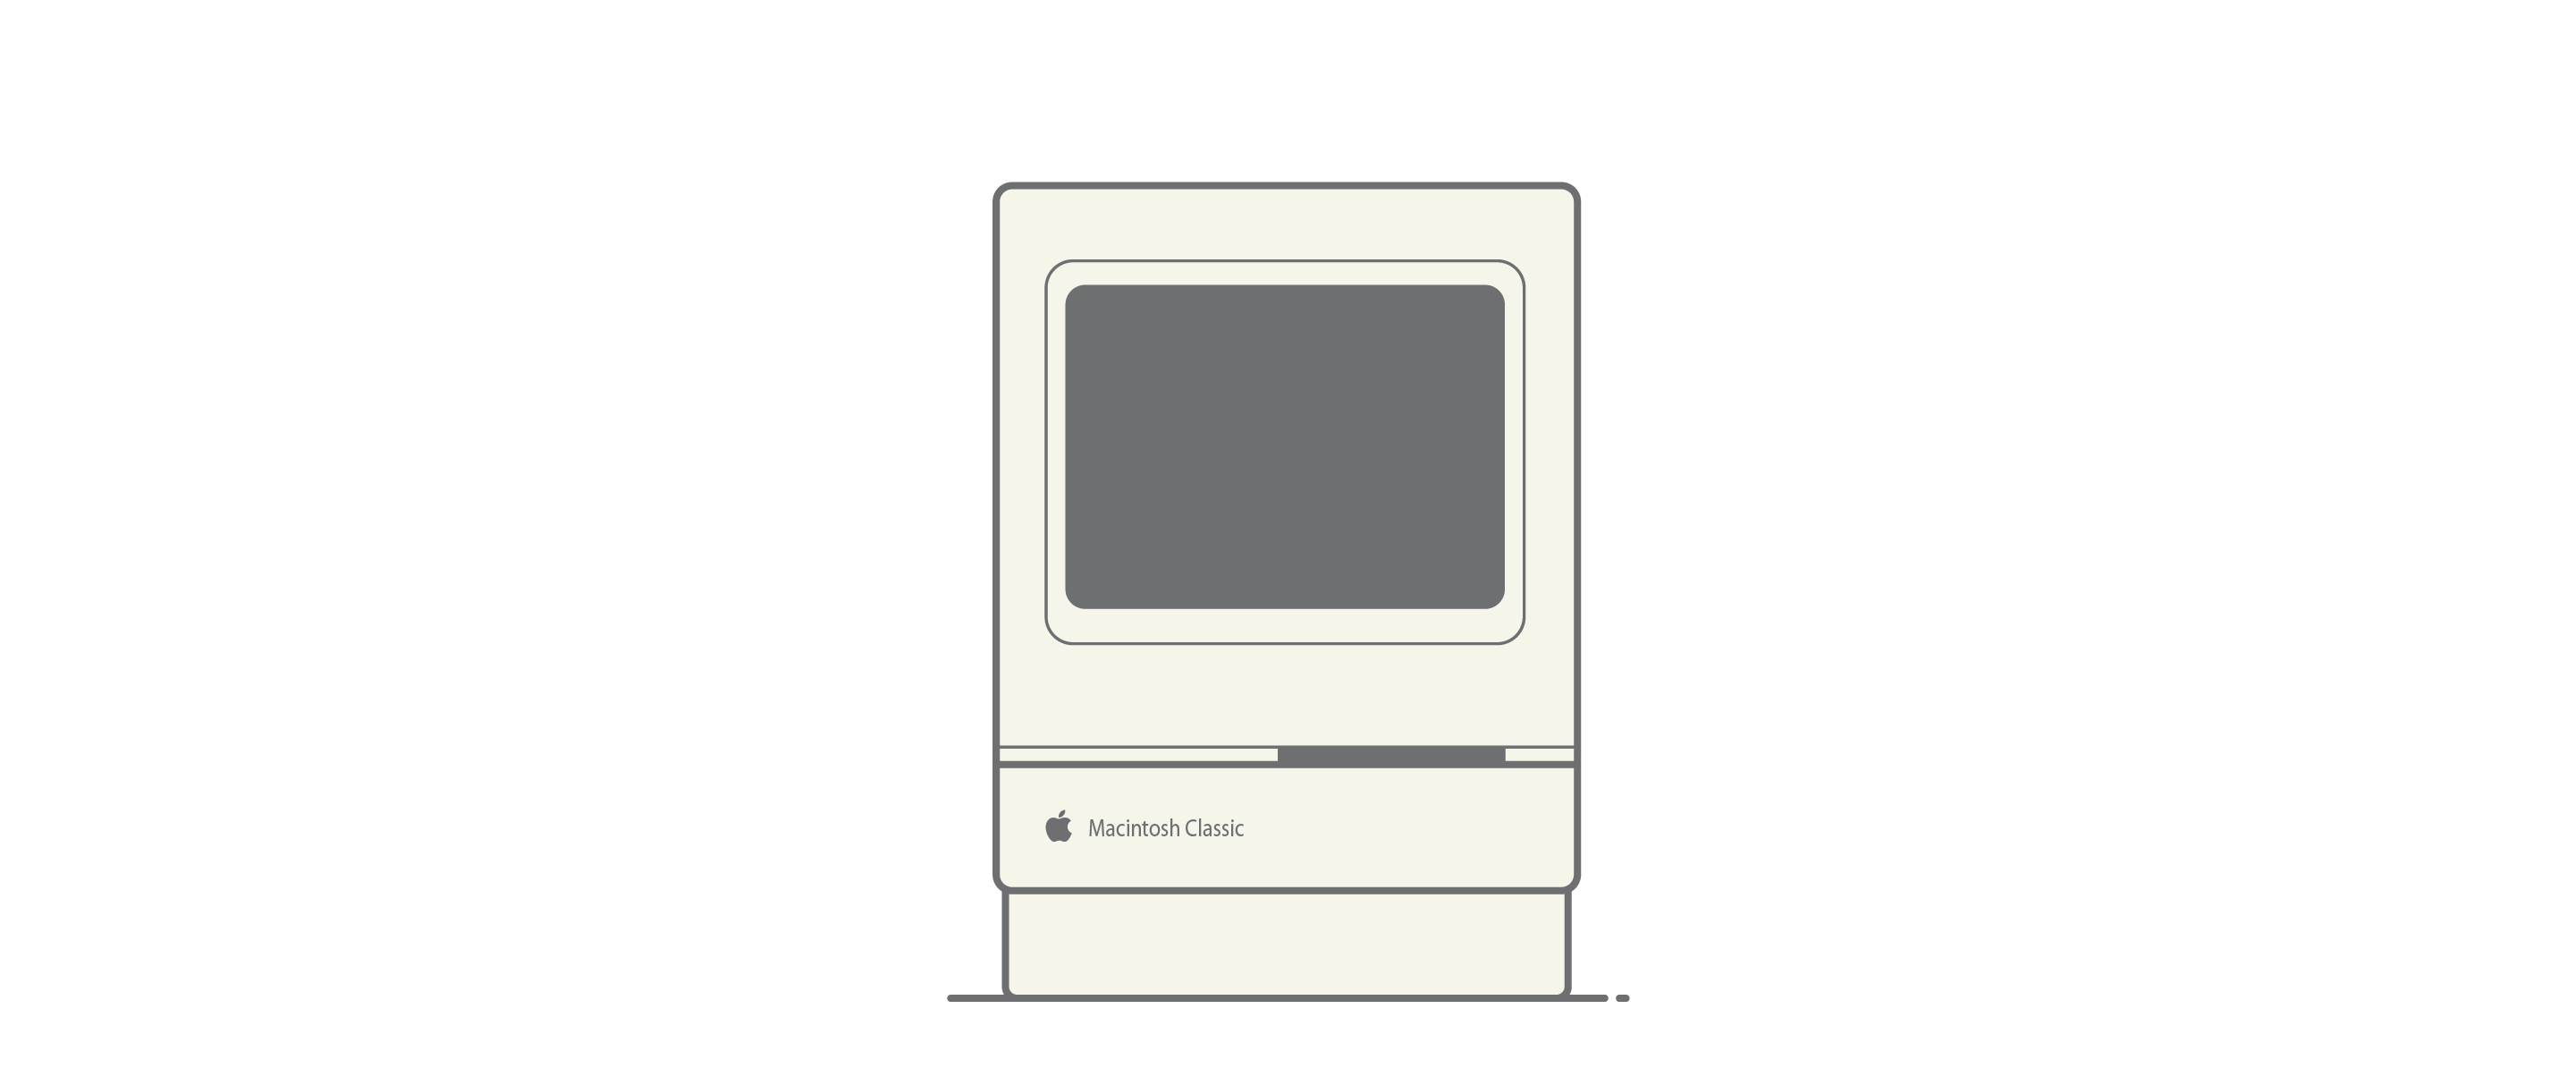 Macintosh – Designed by Apple, 1984